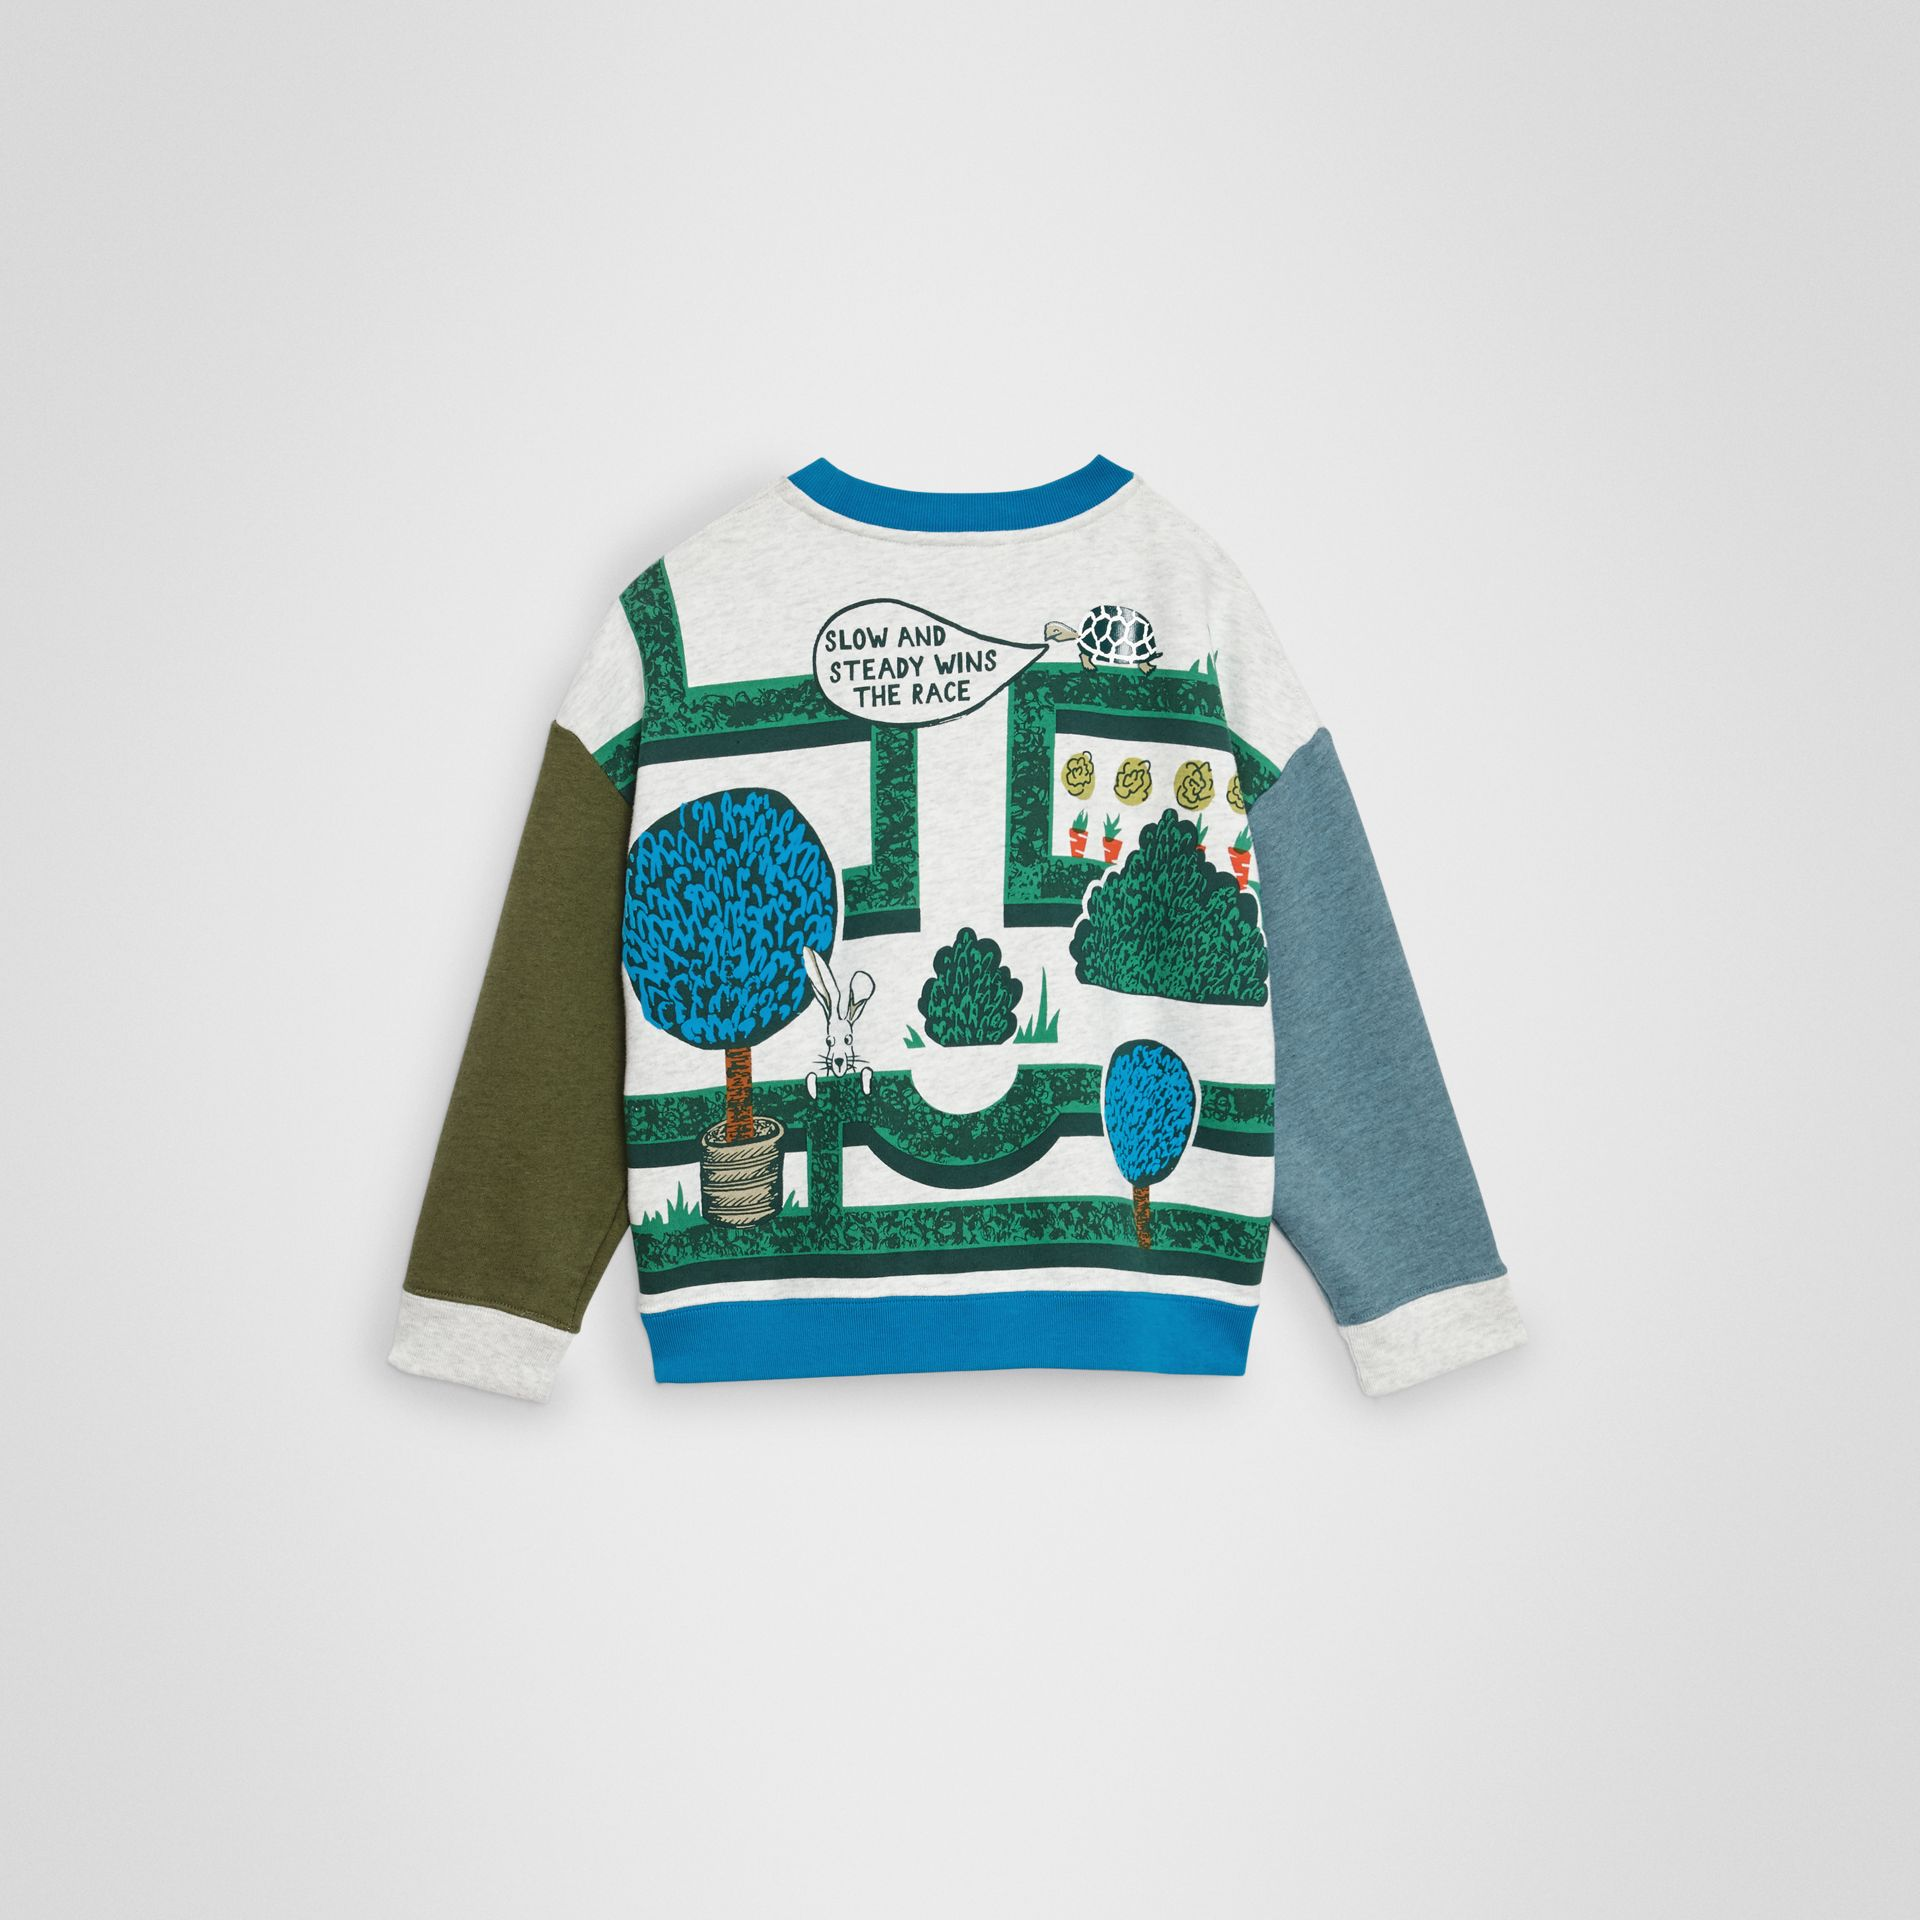 Hedge Maze Print Cotton Sweatshirt in Multicolour | Burberry Australia - gallery image 4